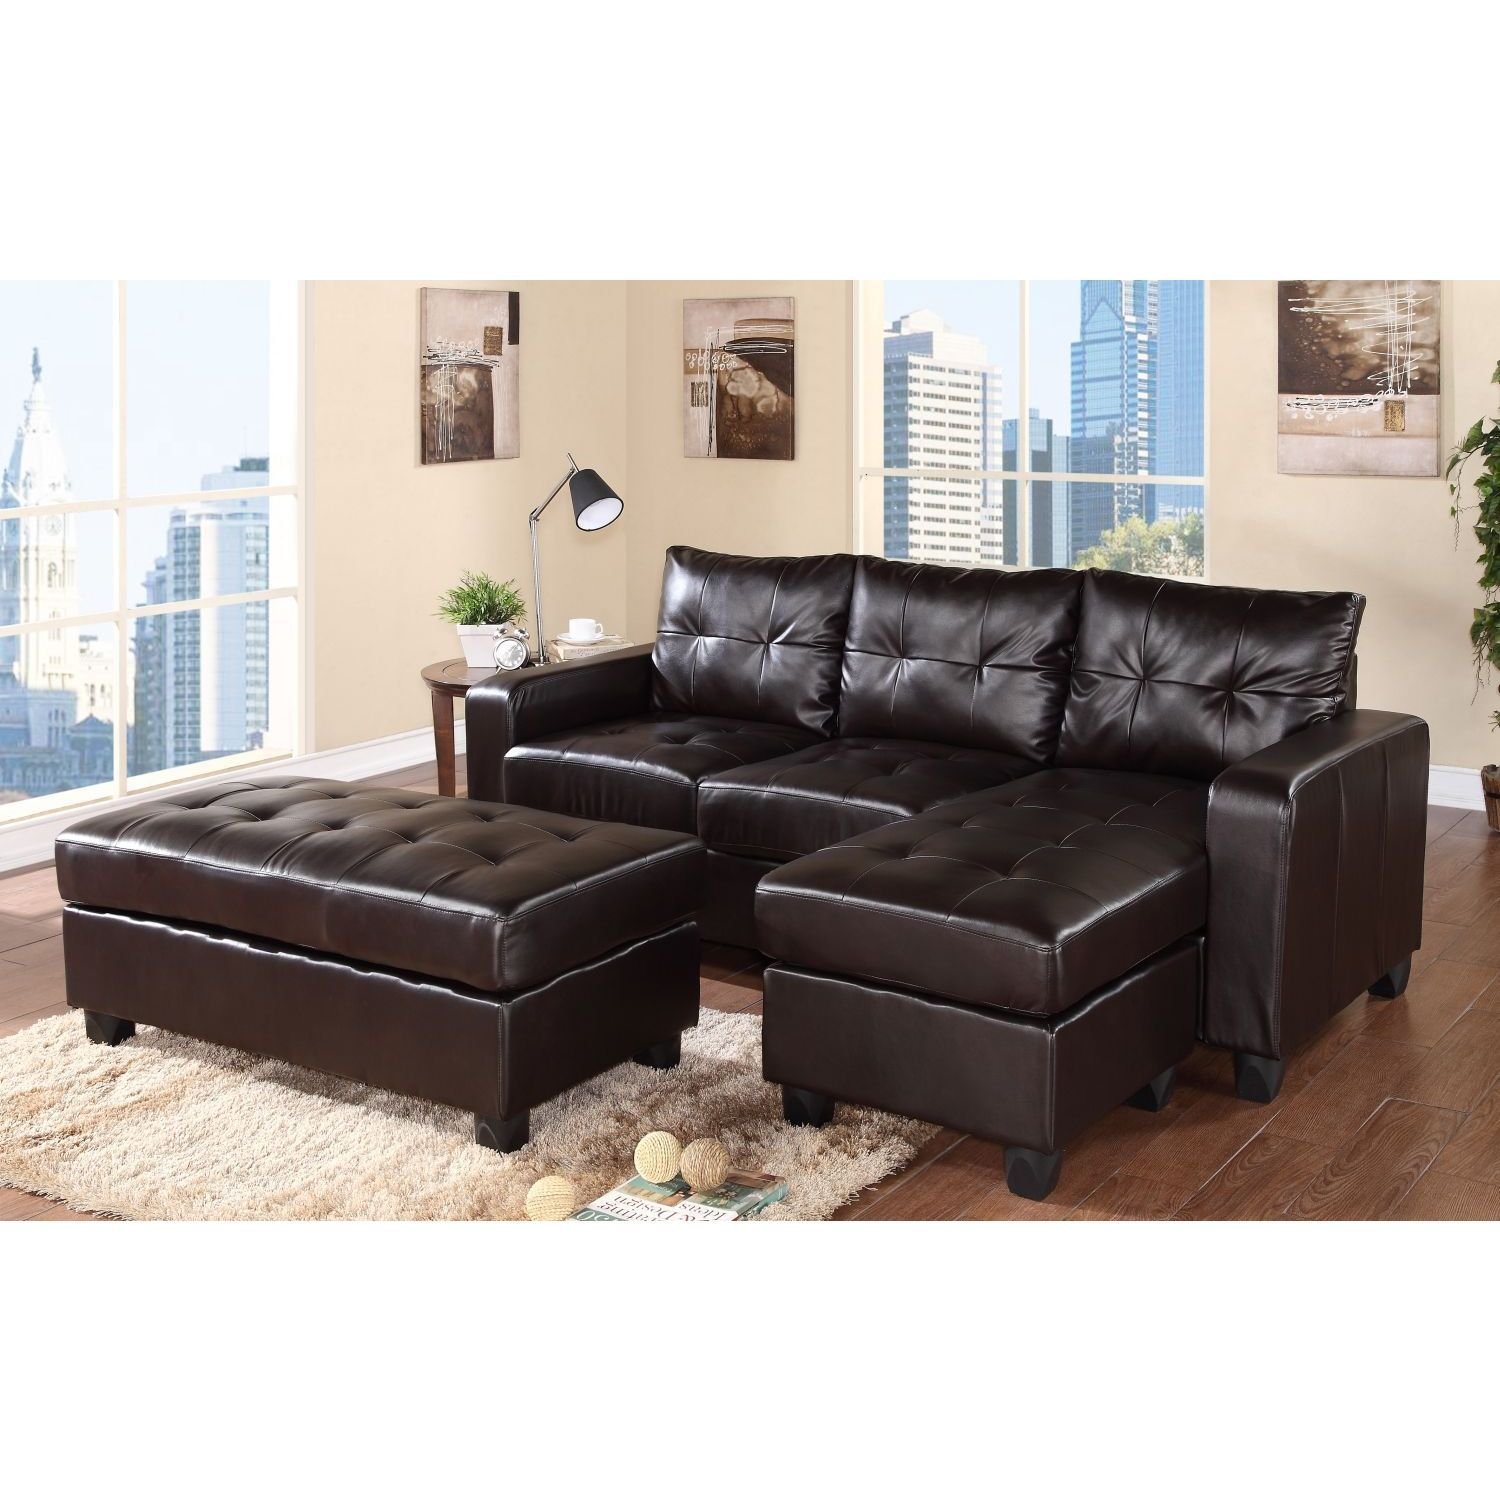 Awesome Aspen Reversible Espresso Bonded Leather Chaise Sectional Ncnpc Chair Design For Home Ncnpcorg